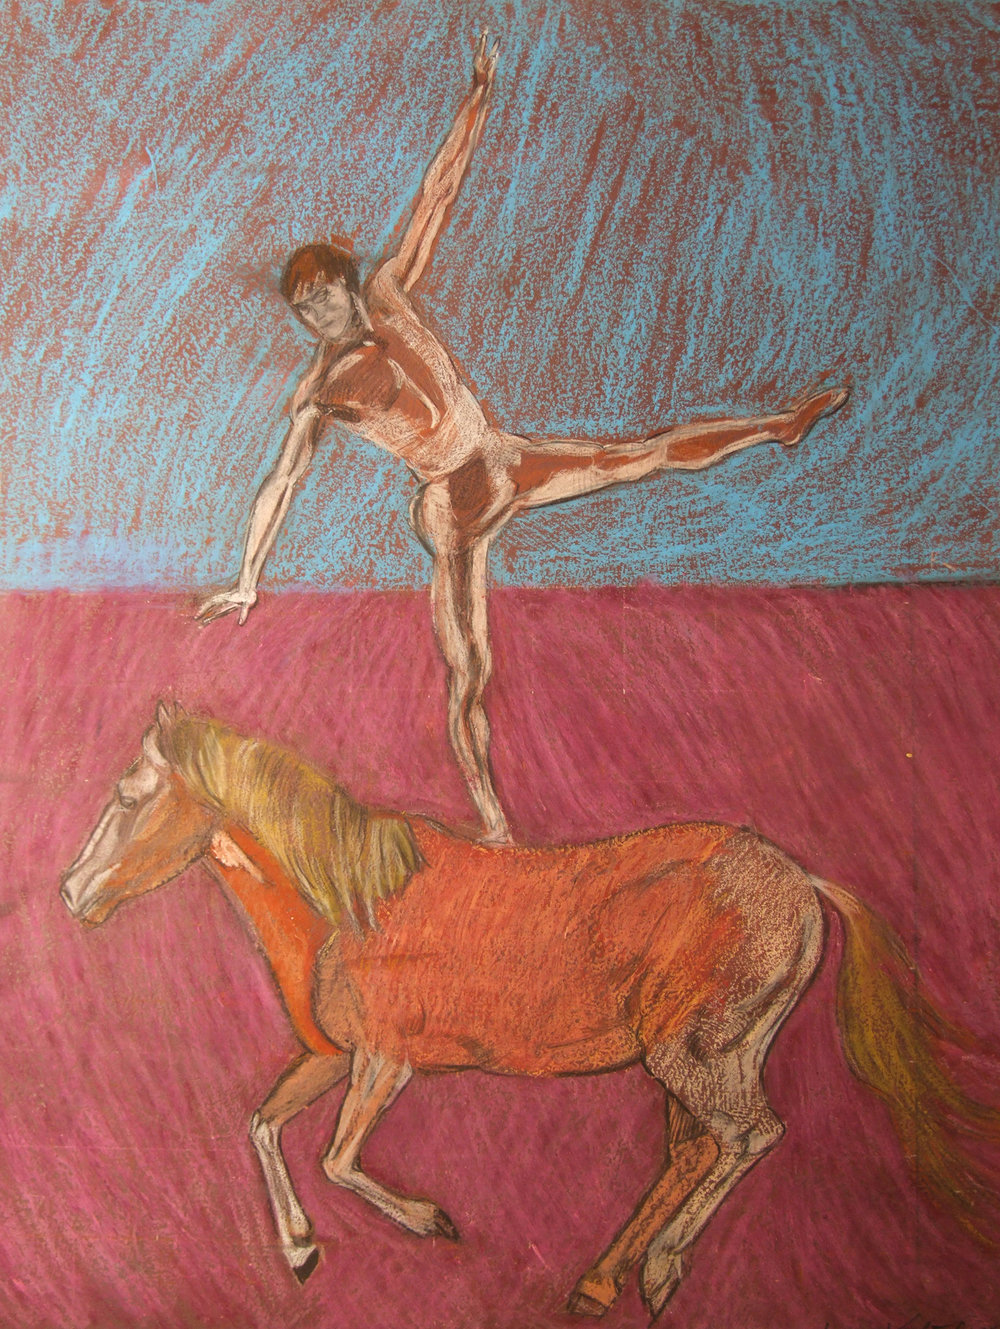 Male Dancer on a Pony